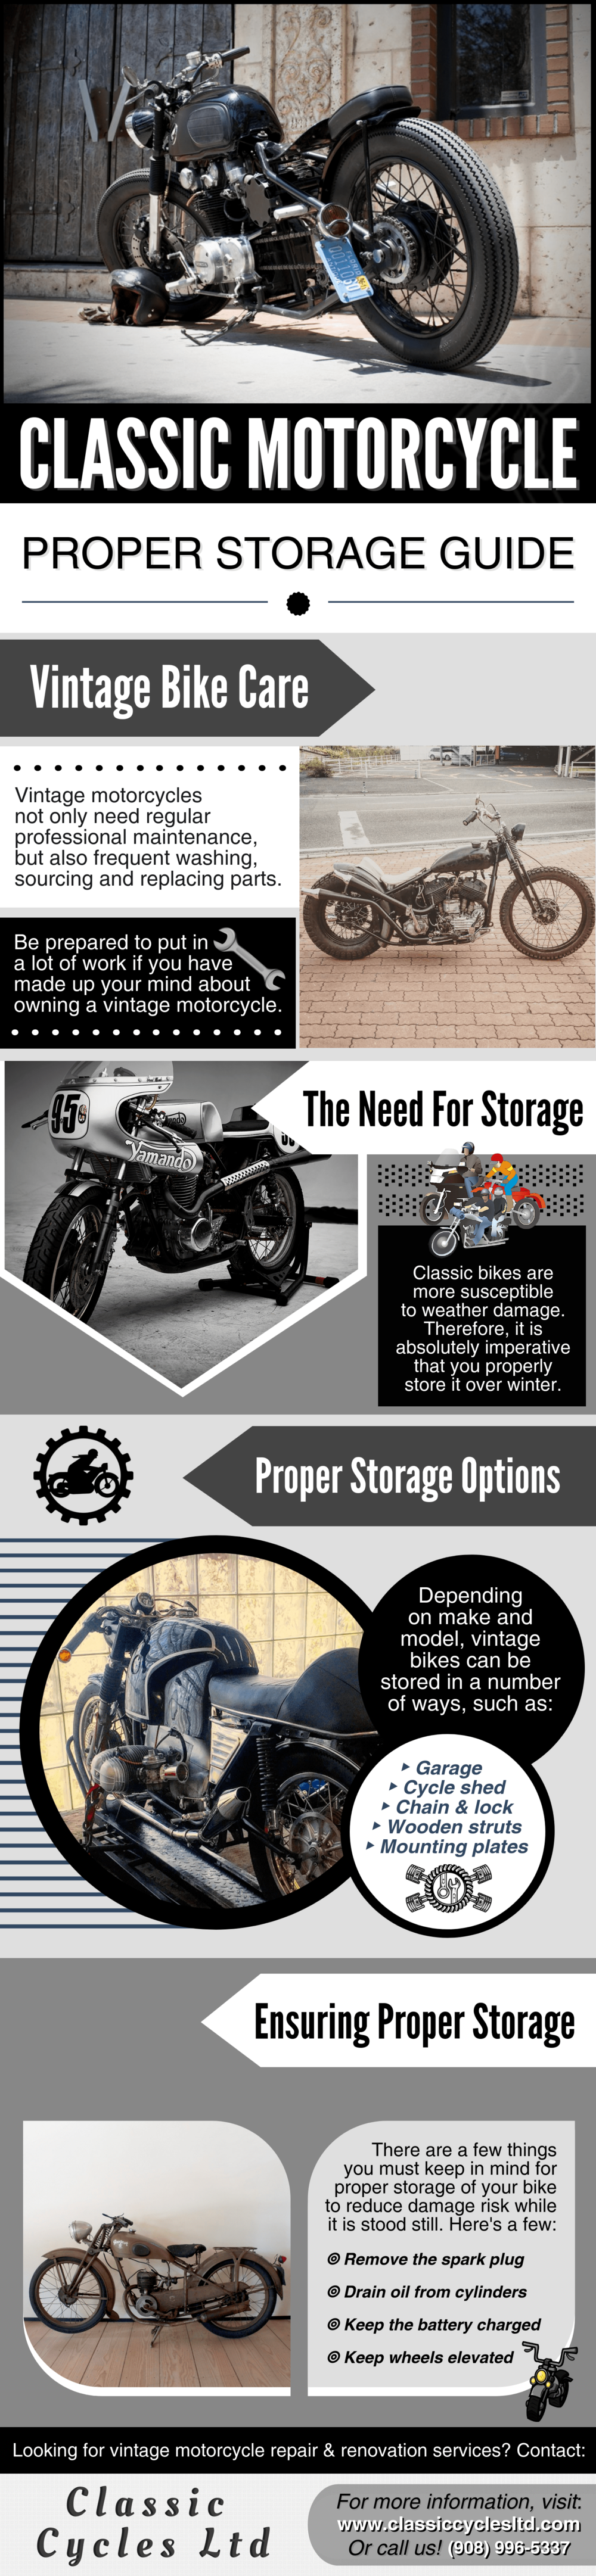 Classic Motorcycle Proper Storage Guide.png